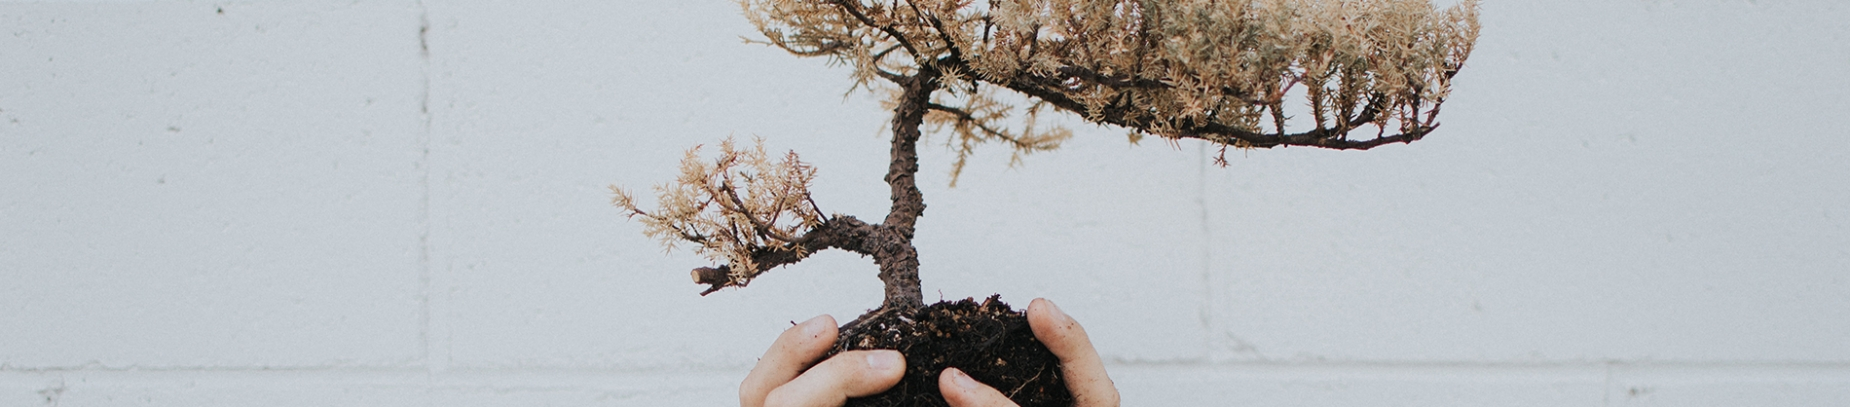 A person holding a small tree by its roots